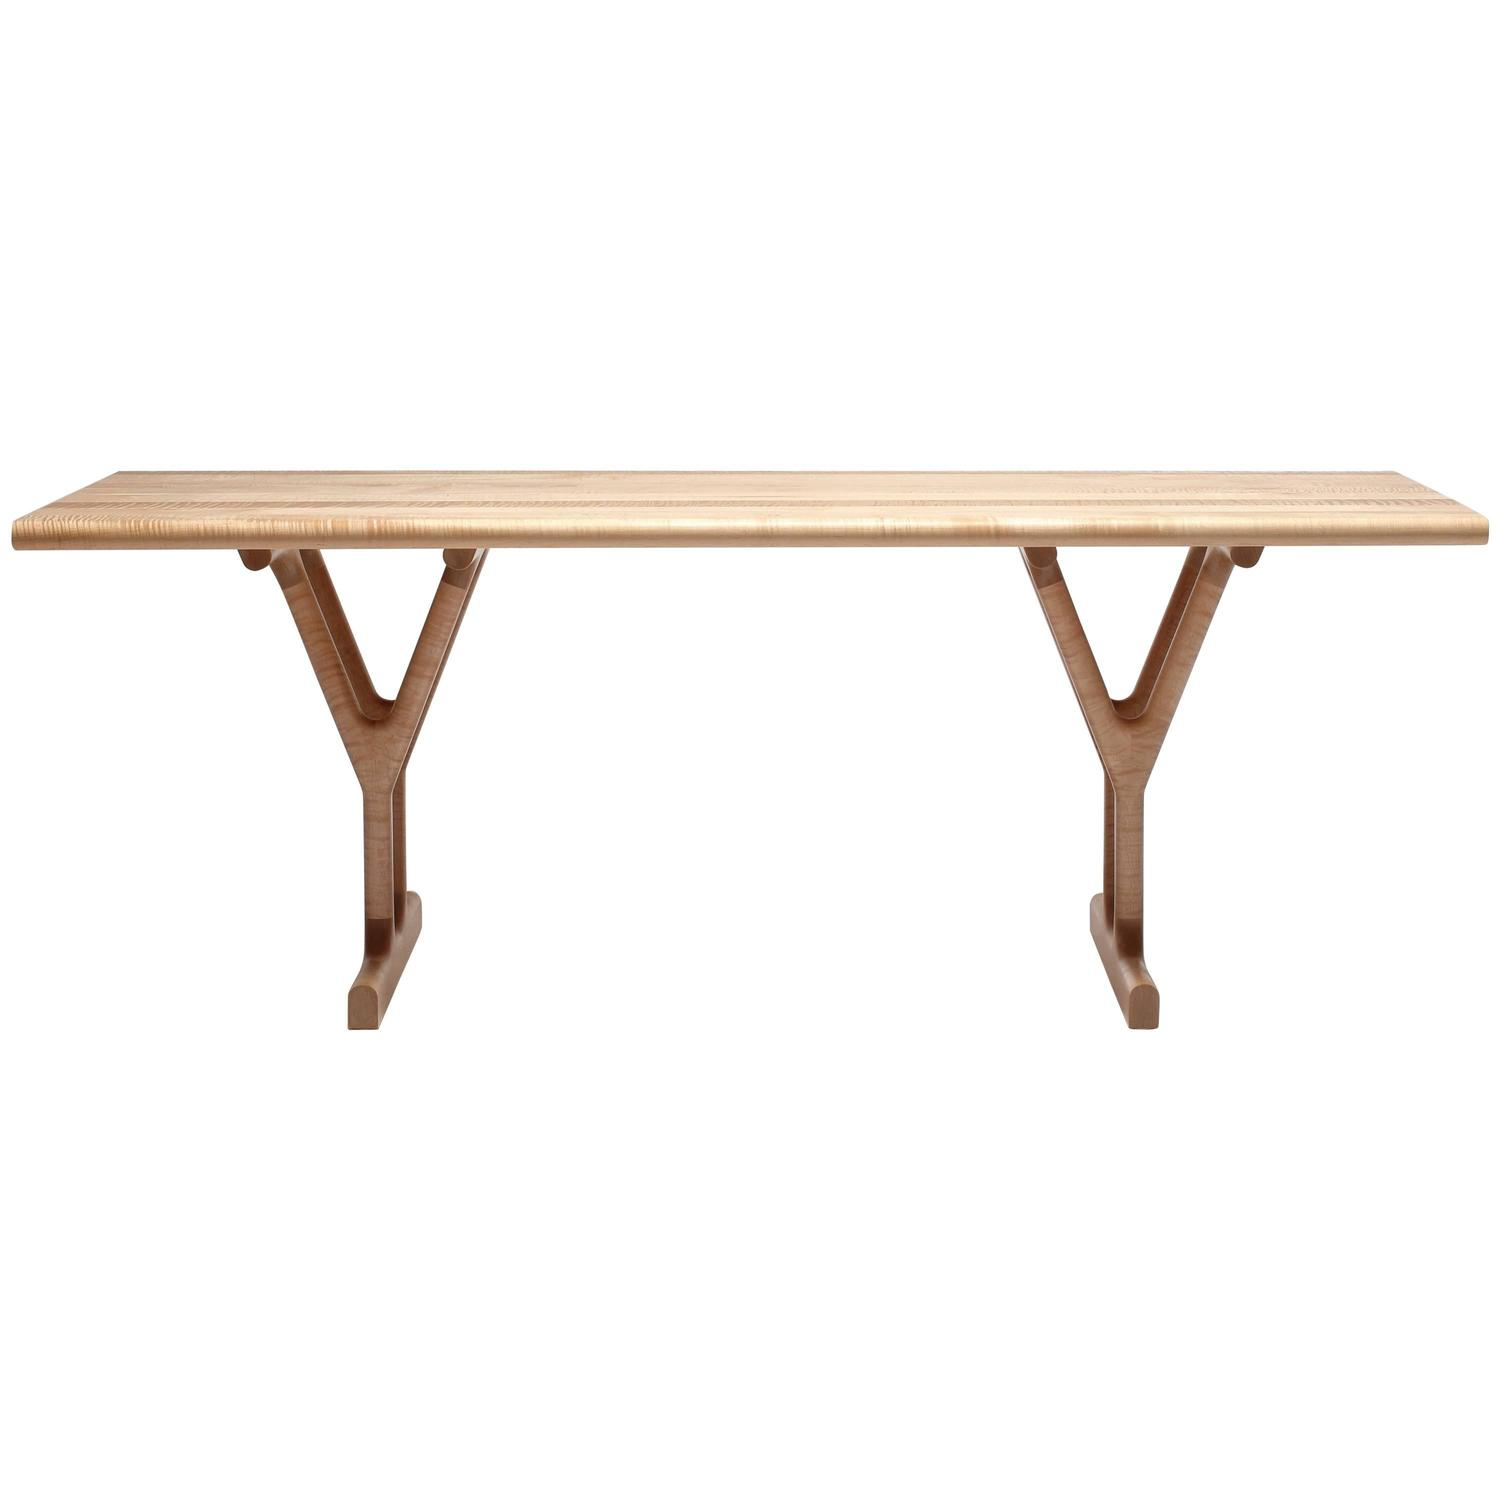 Slingshot Dining Table With Trestle Legs In Solid Maple